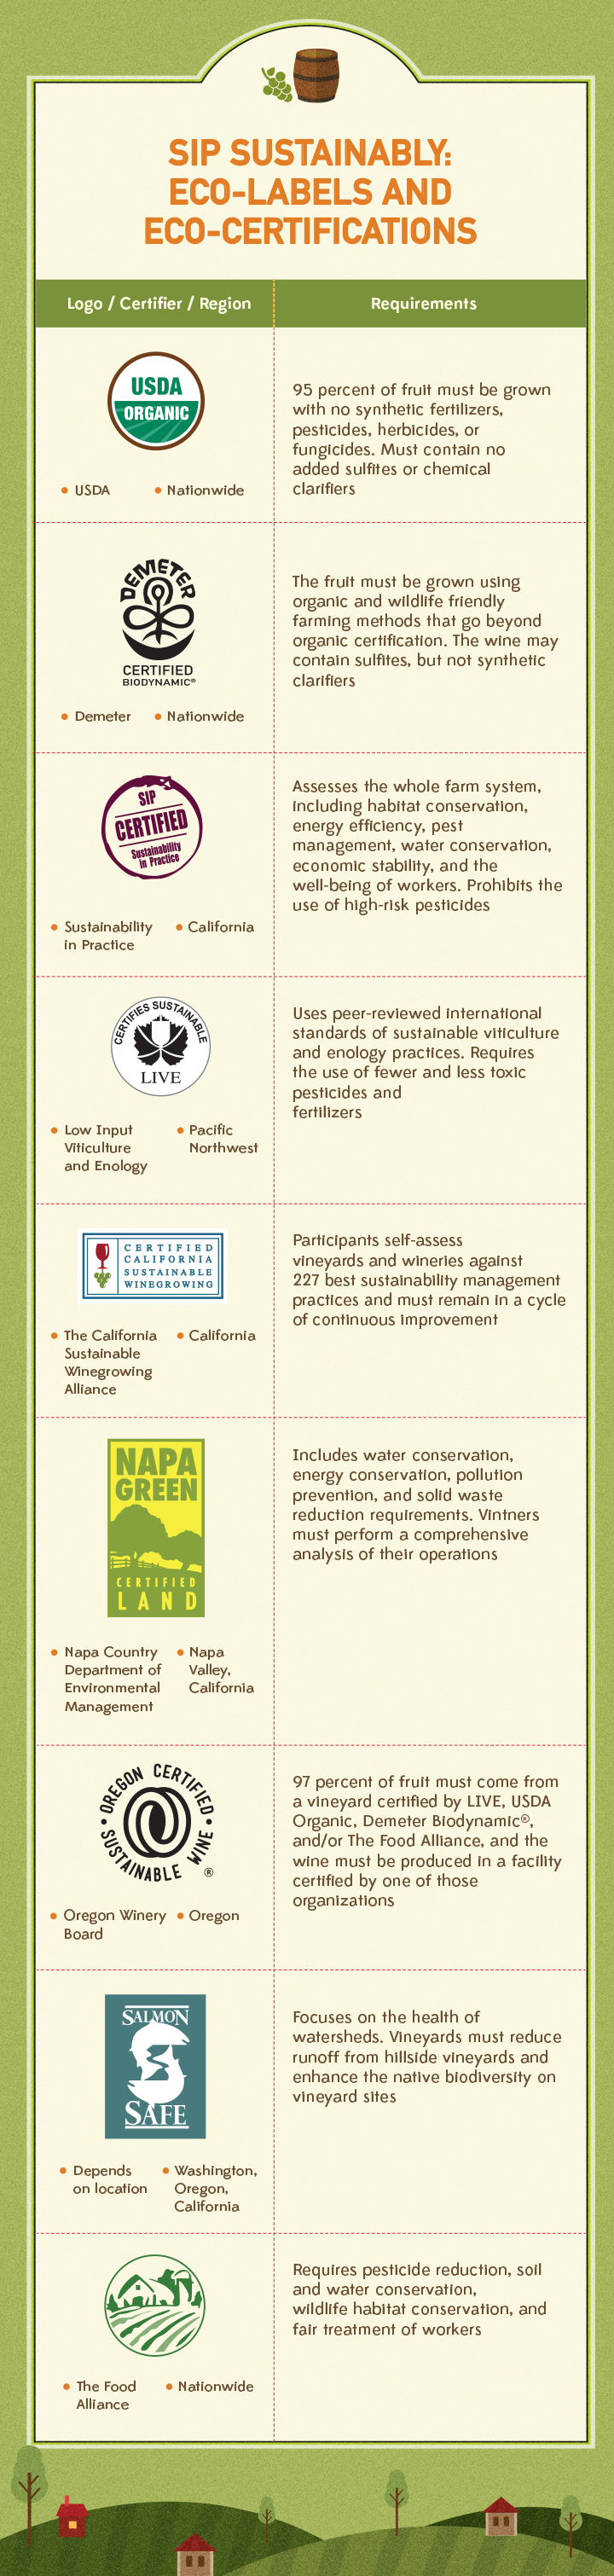 Sip Sustainably Eco-labels and Eco-certifications